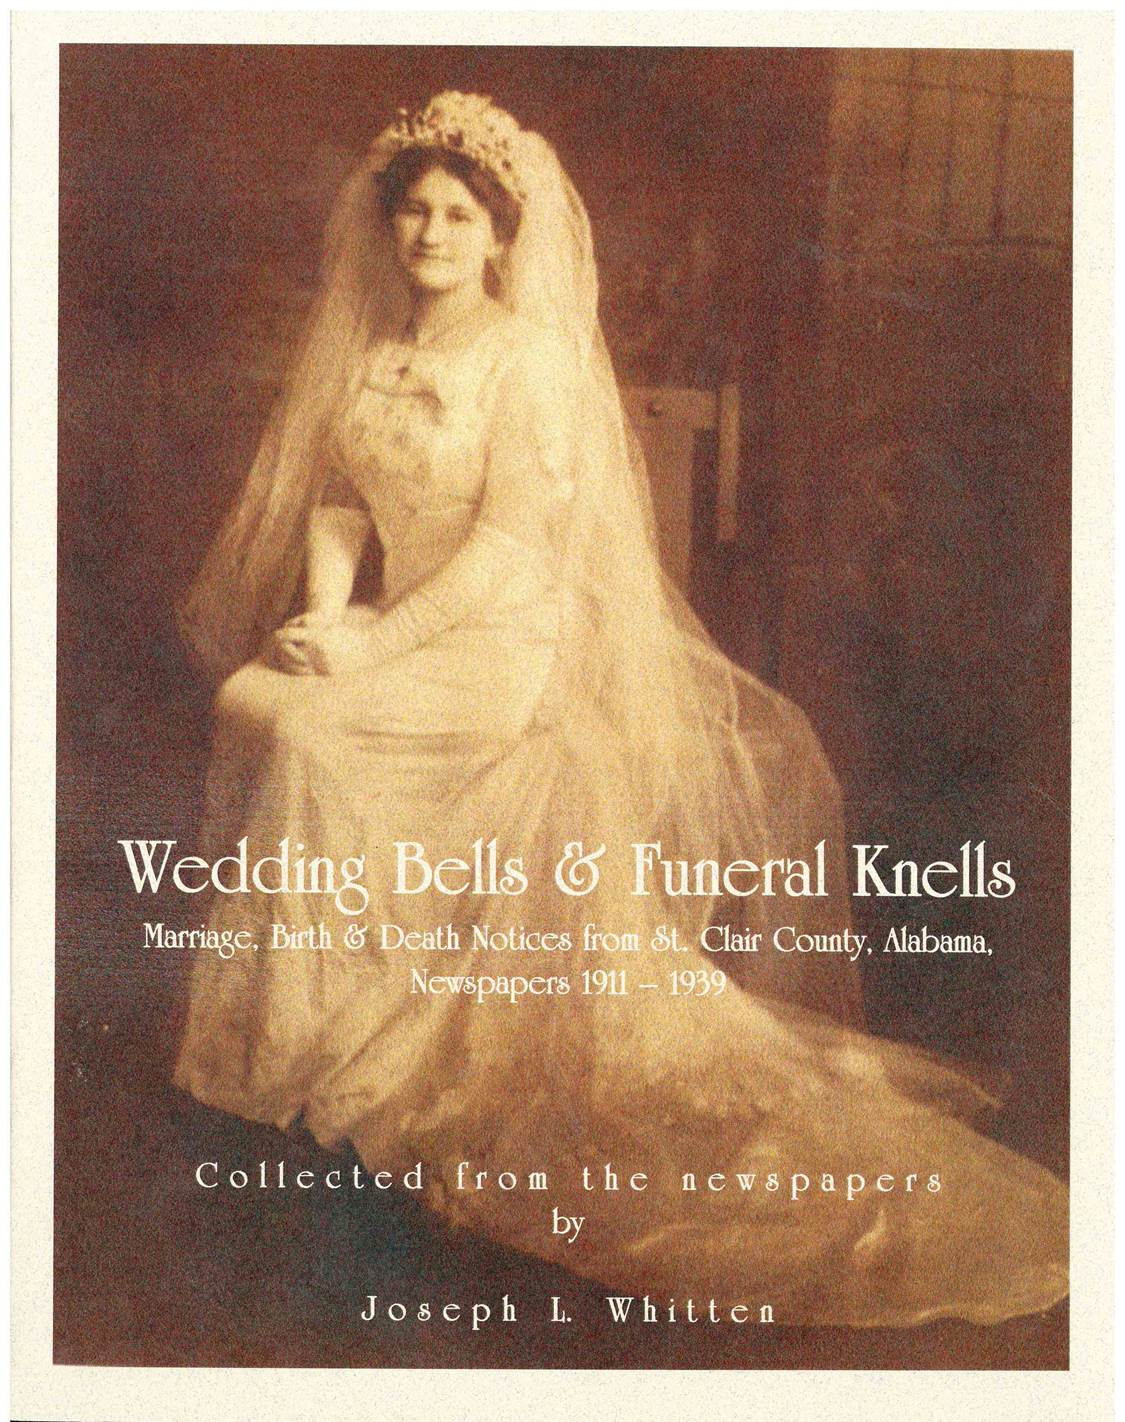 Alabama saint clair county odenville - Wedding Bell And Funeral Knells